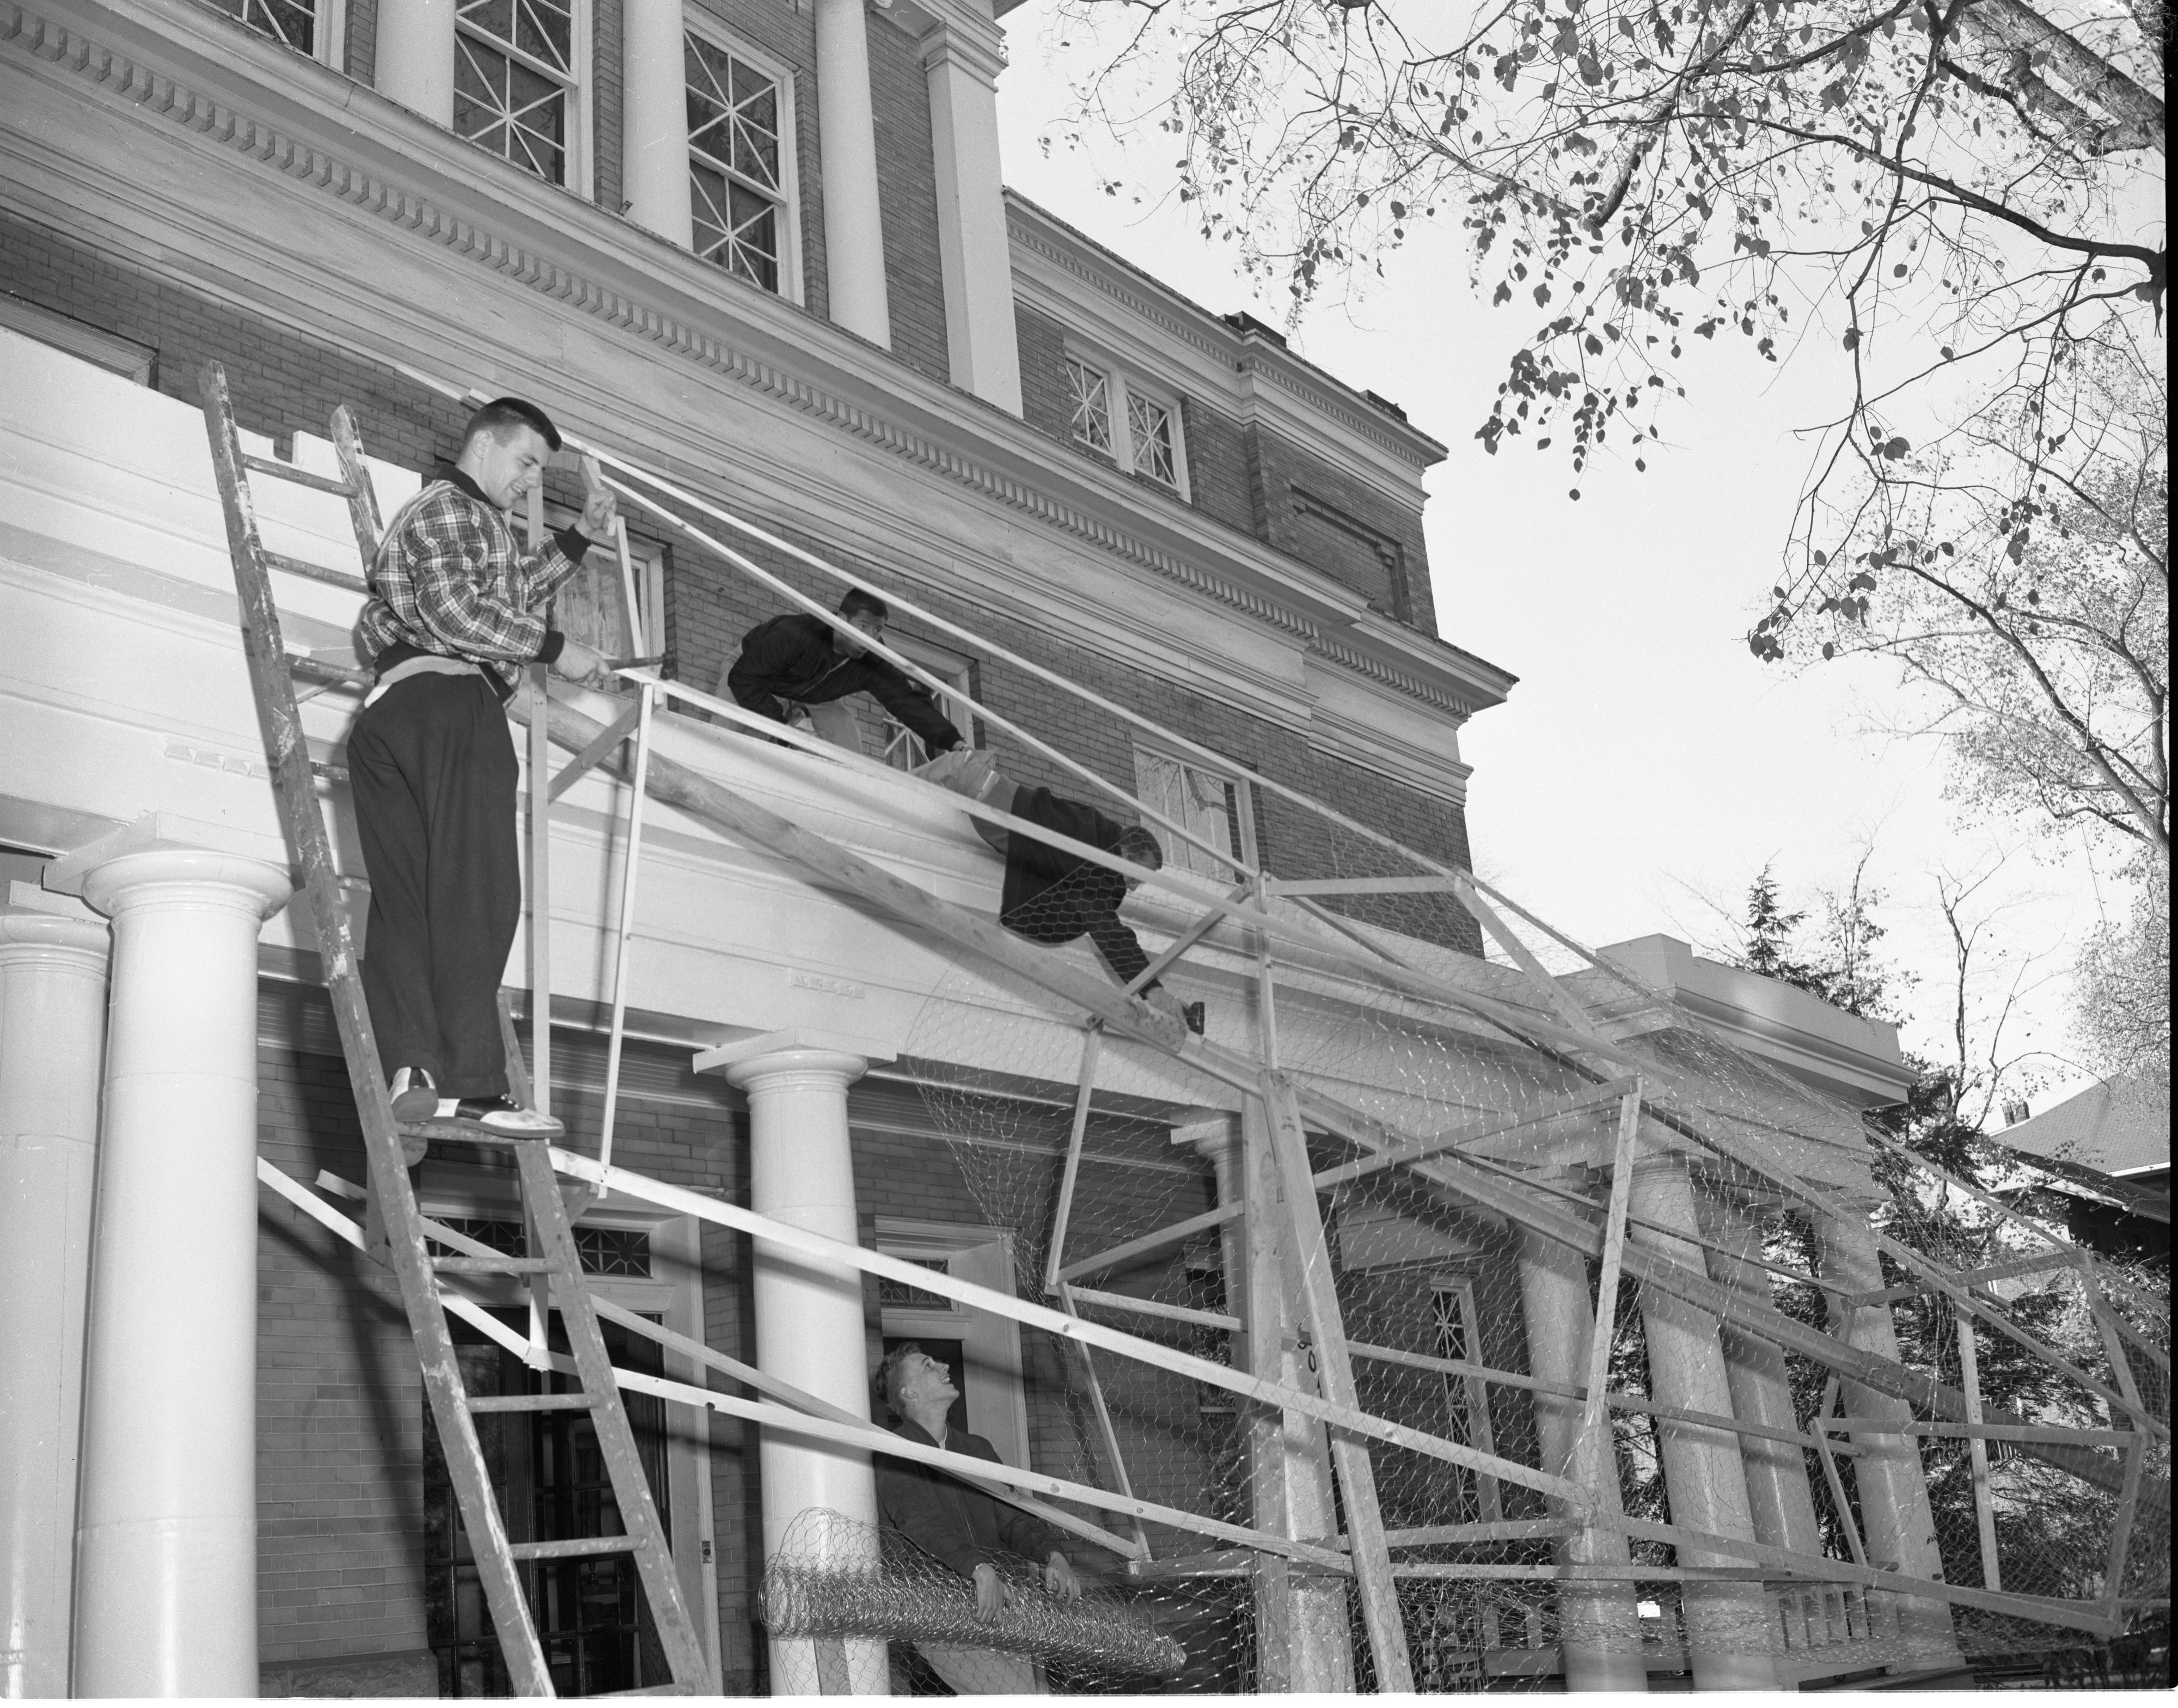 Beta Theta Pi Fraternity Brothers Construct Their Homecoming Display, October 1955 image